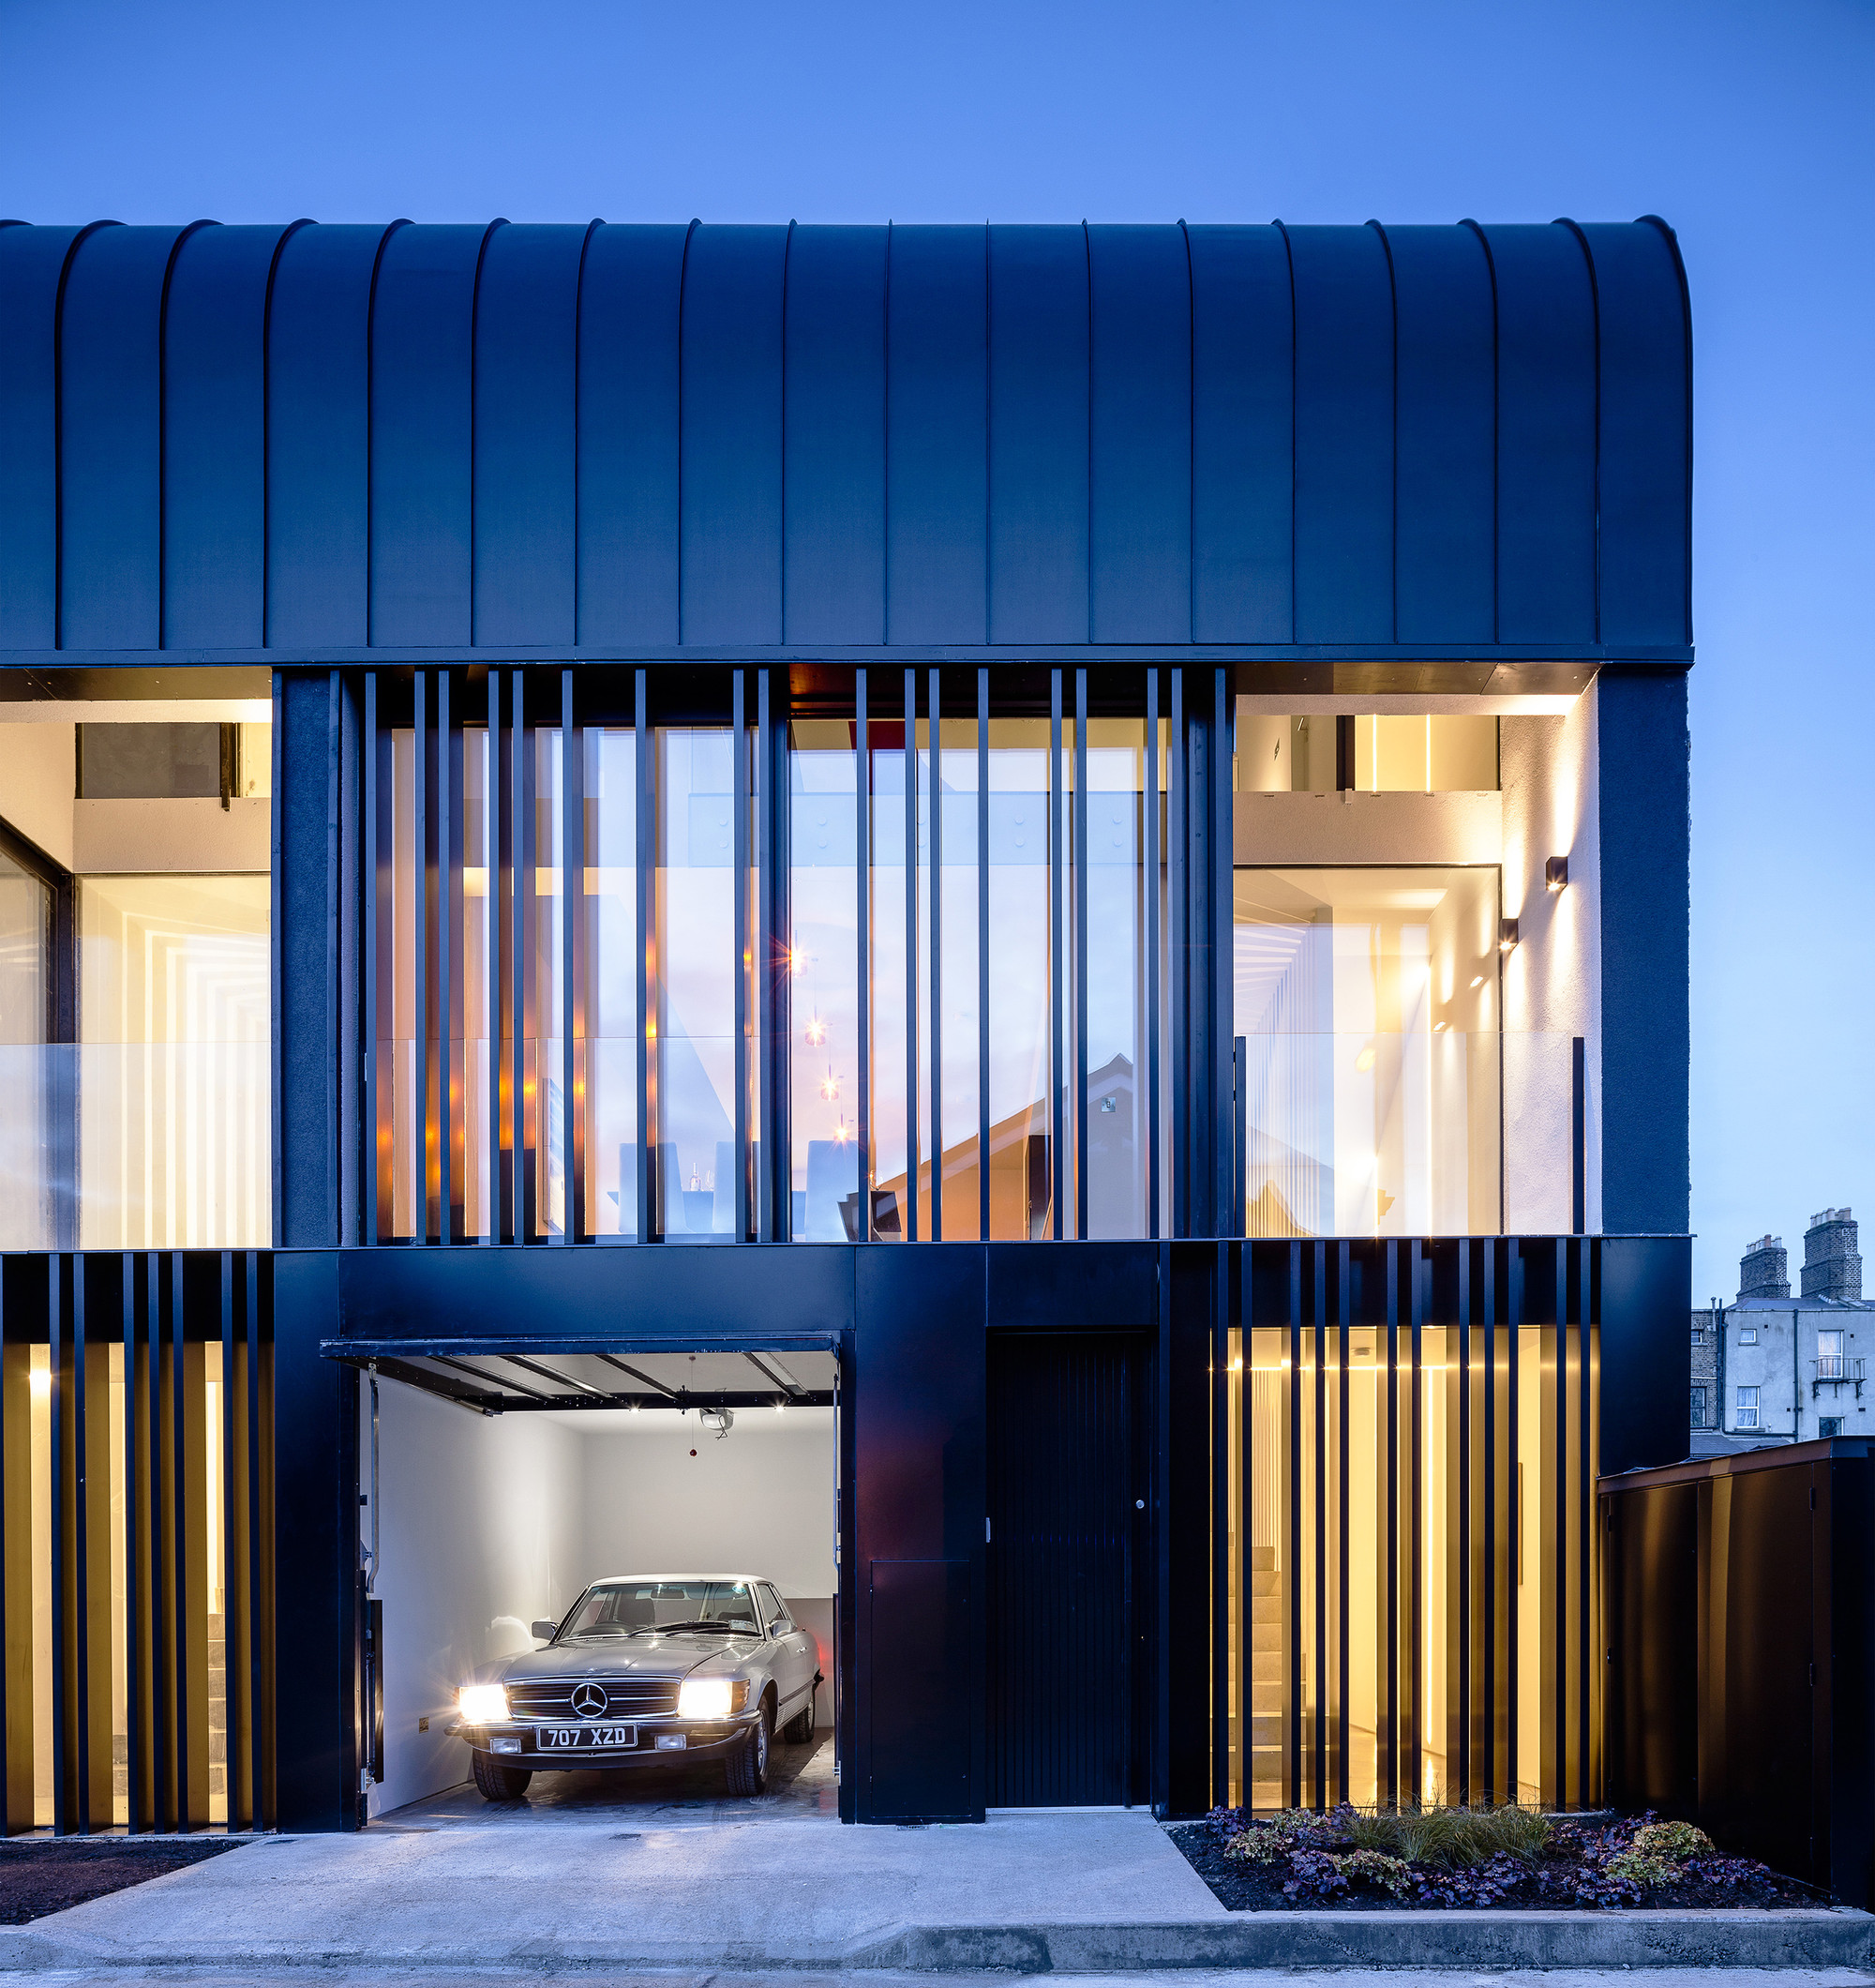 Small Spaces Architects Dublin Ireland Houses: Percy Lane Luxury Homes / ODOS Architects